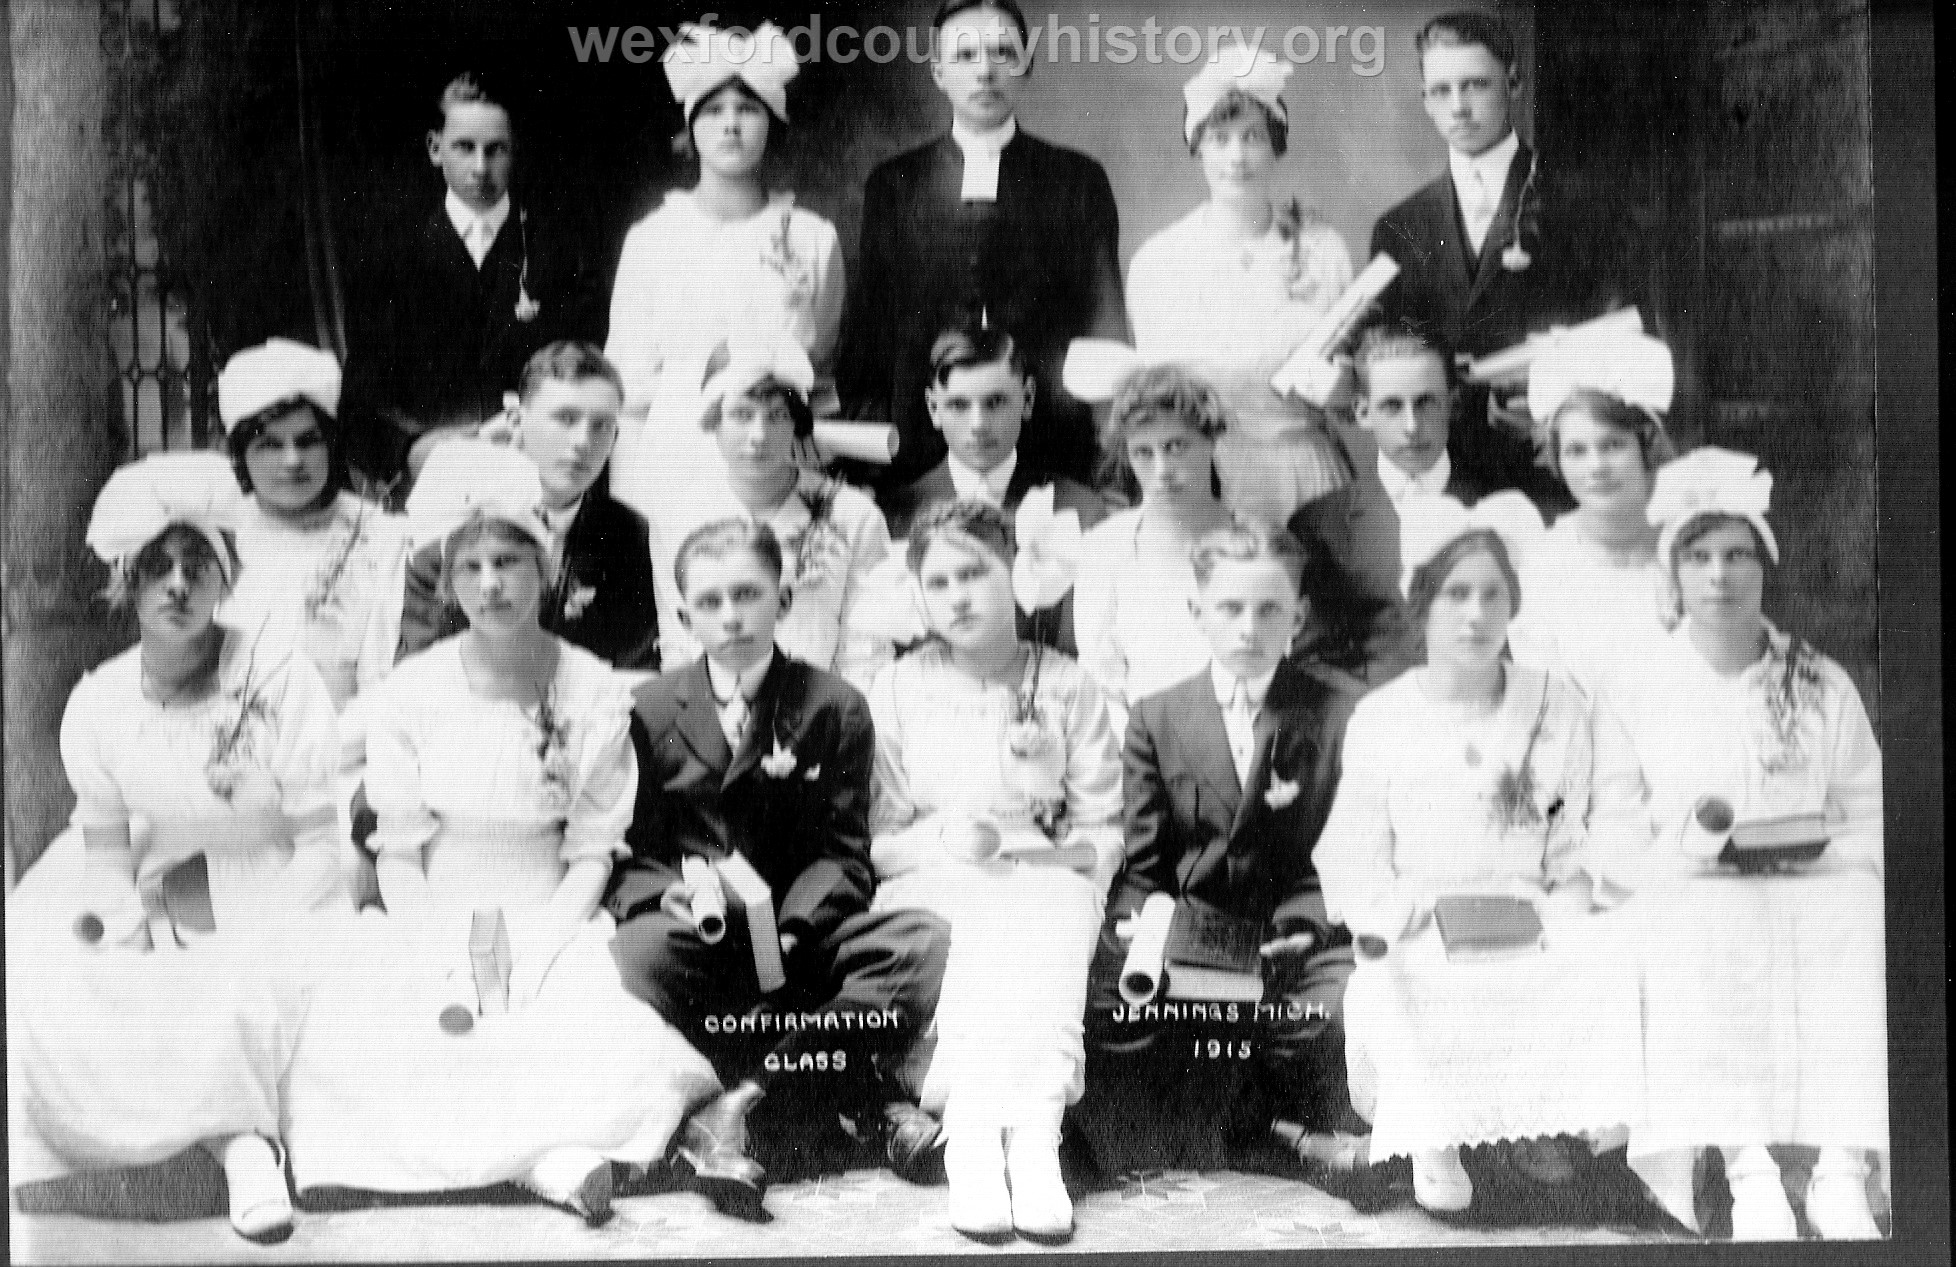 Jennings Confirmation Class, 1915